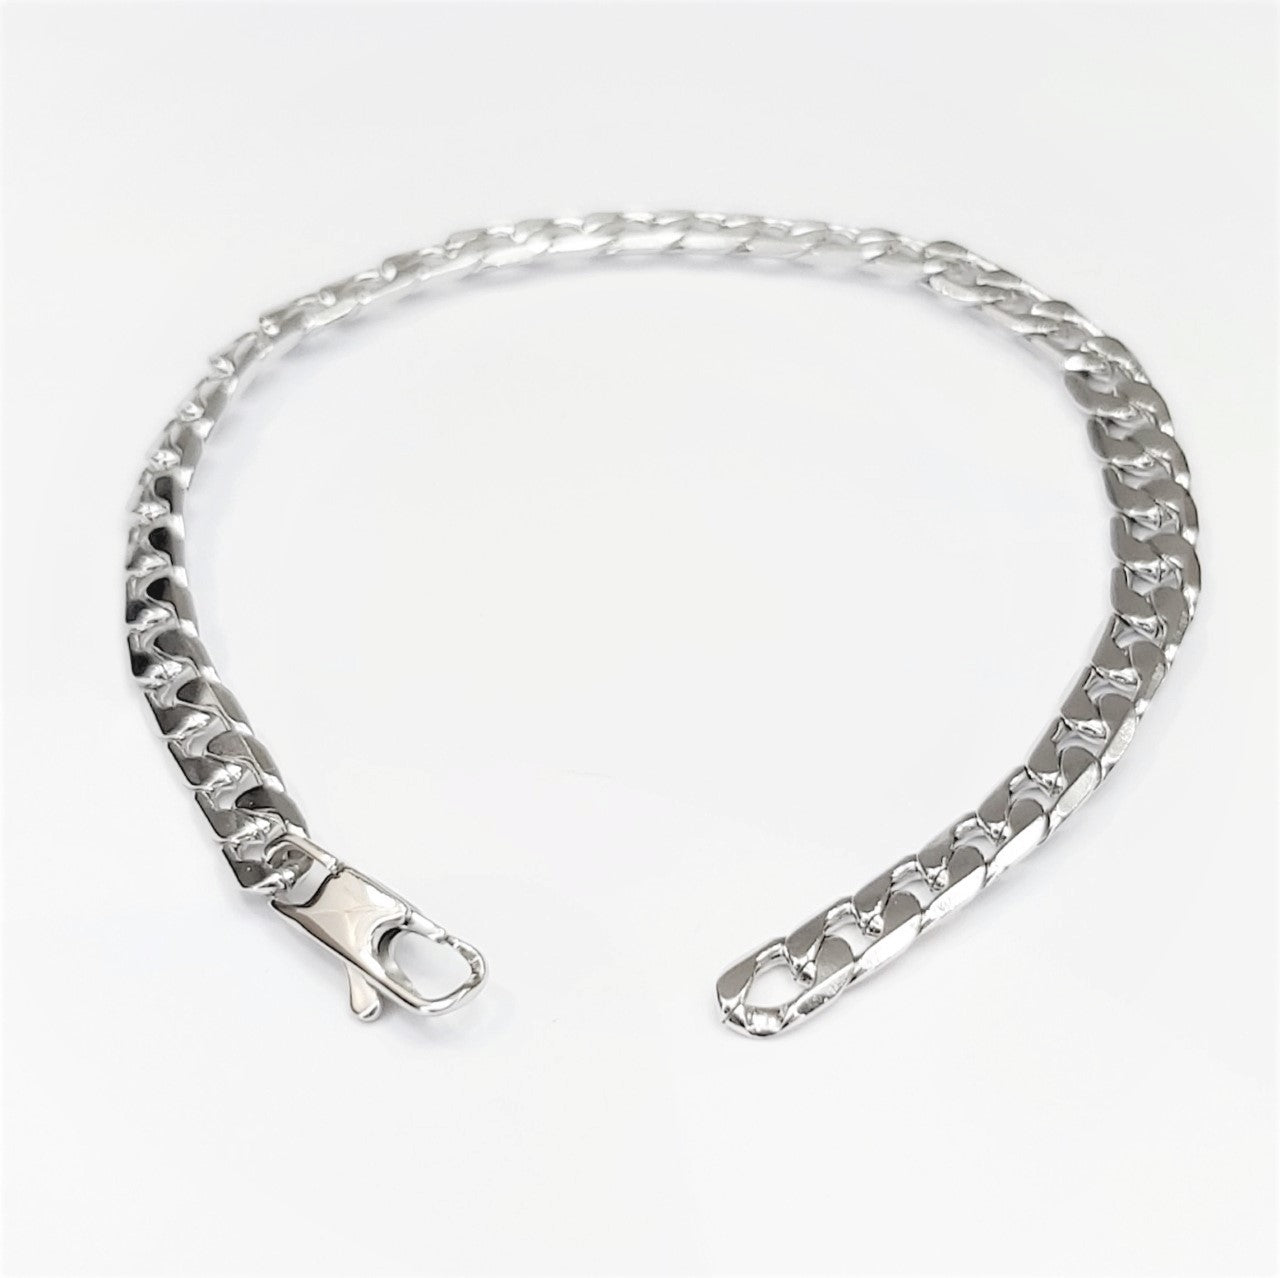 Stainless Steel Curb Link Bracelet - Theodore Designs